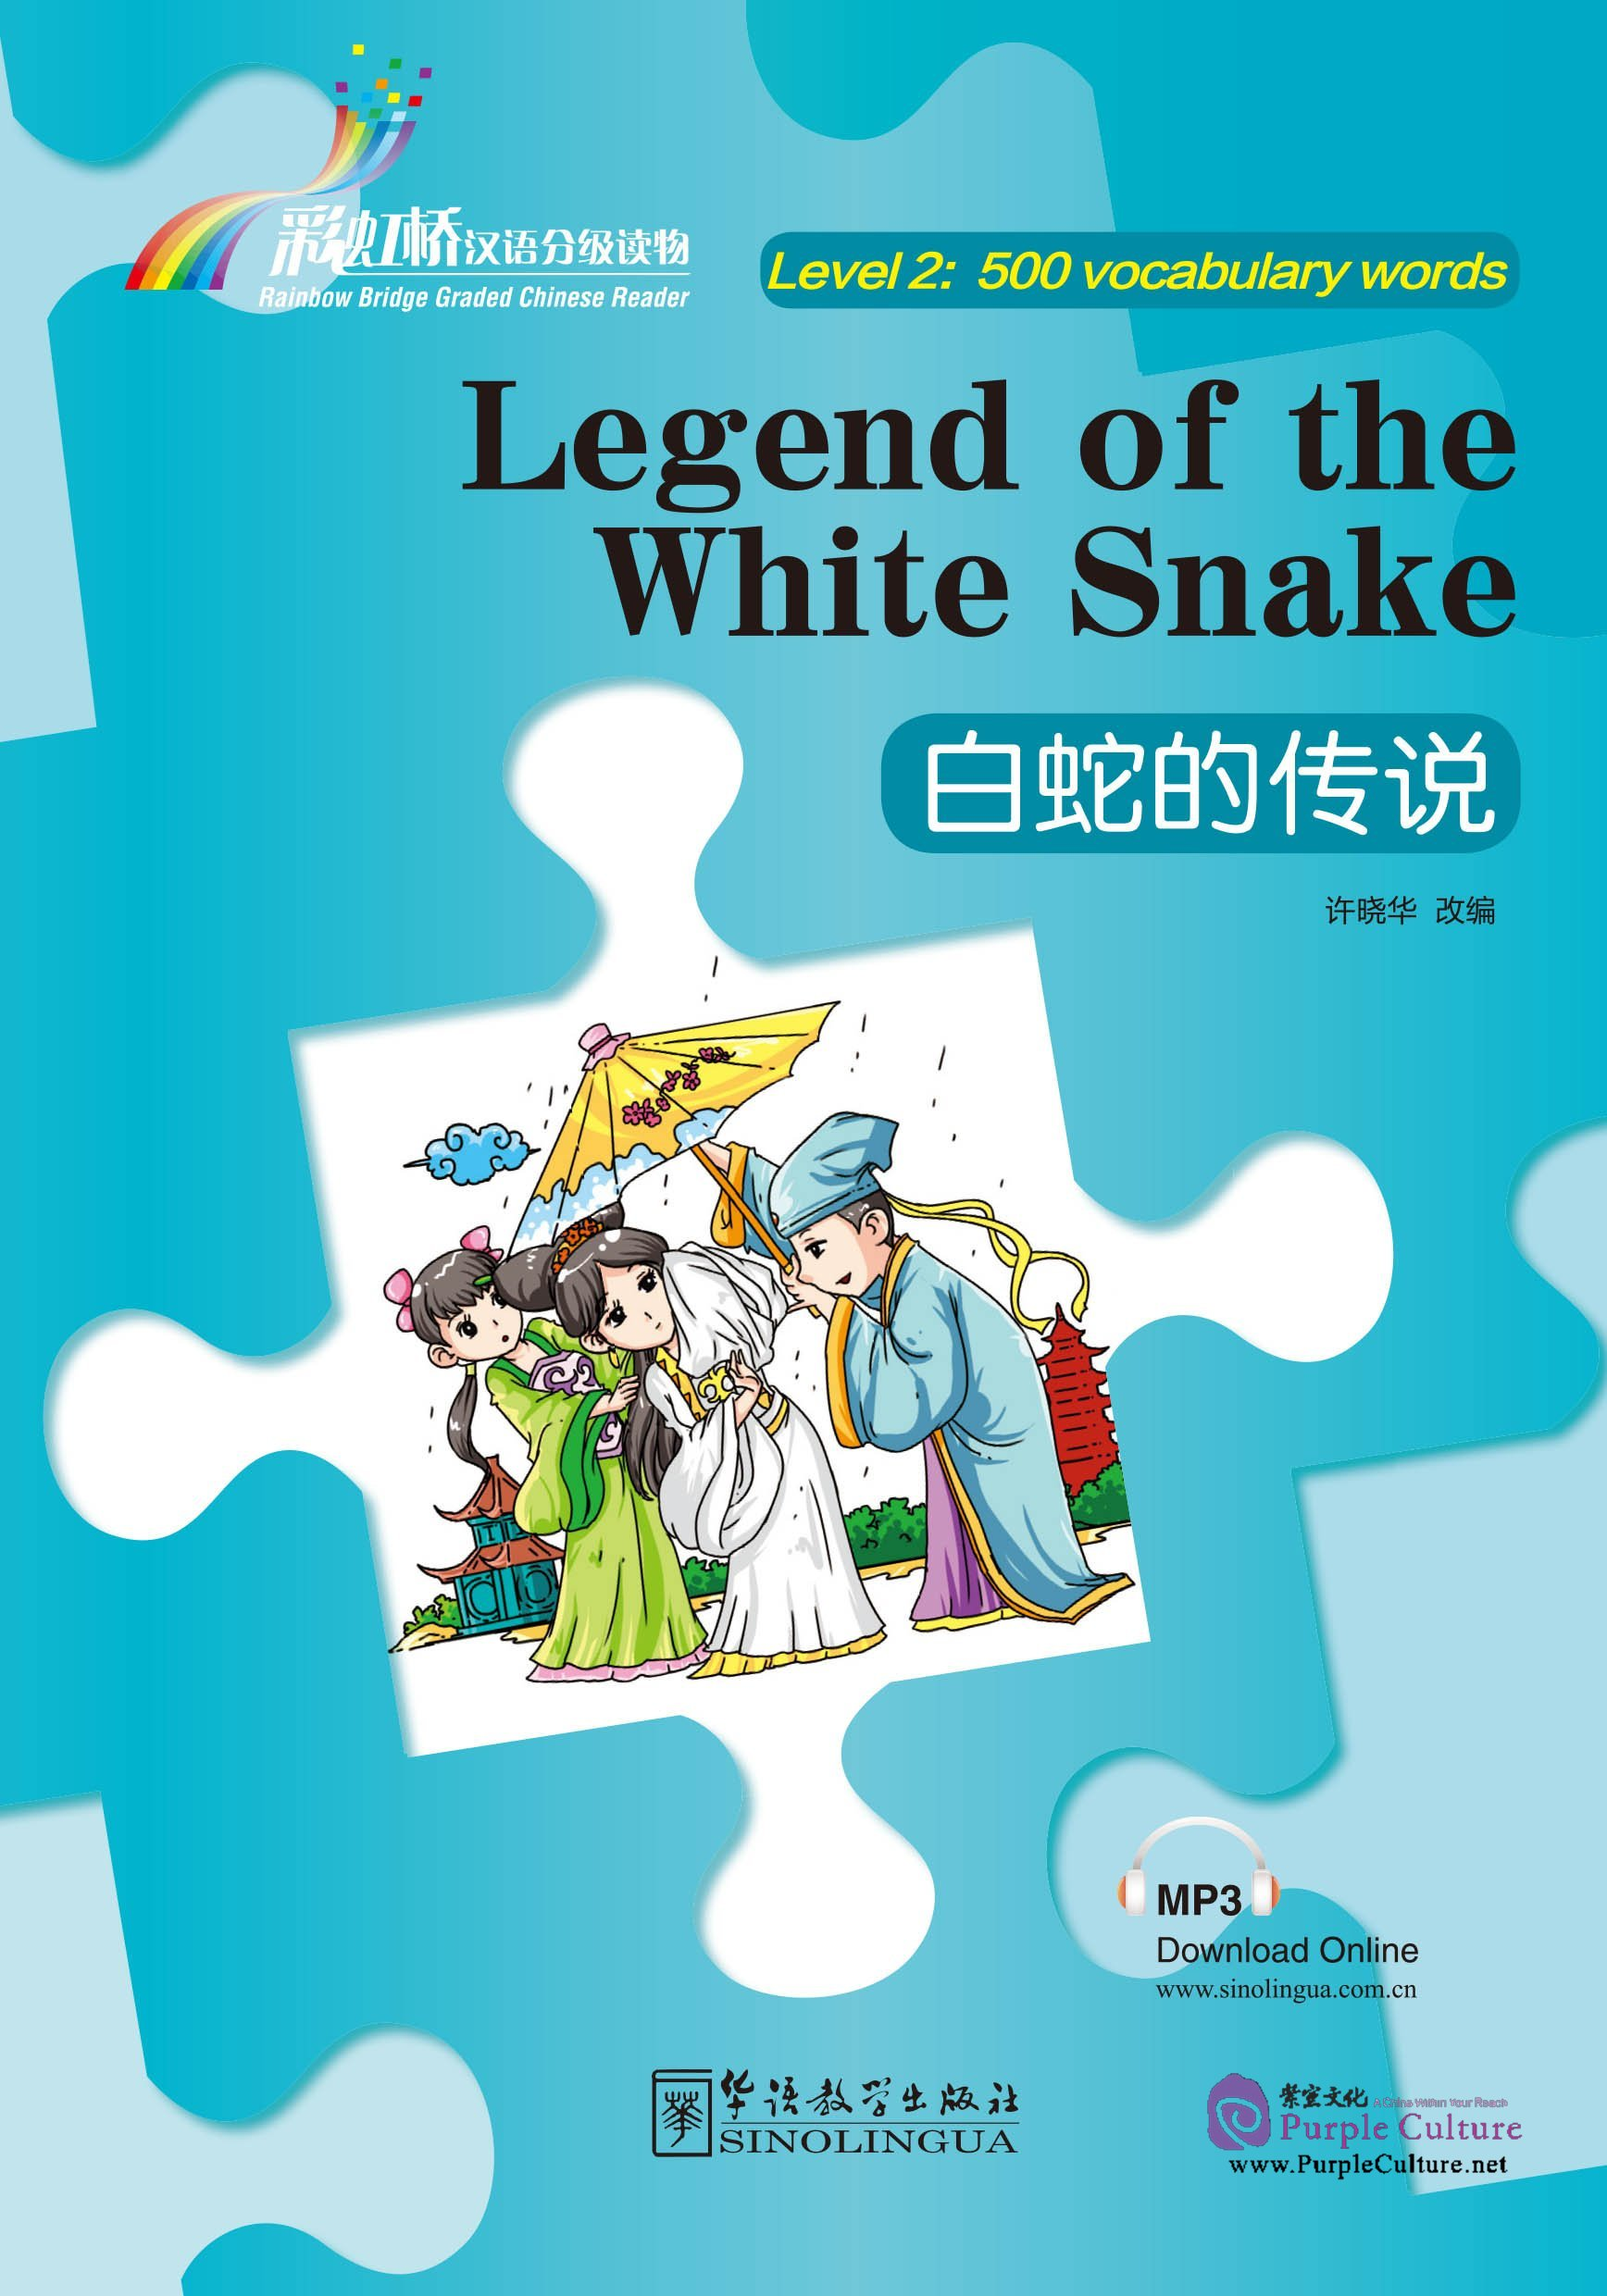 Rainbow Bridge Graded Chinese Reader Level 2 500 Vocabulary Words Legend Of The White Snake